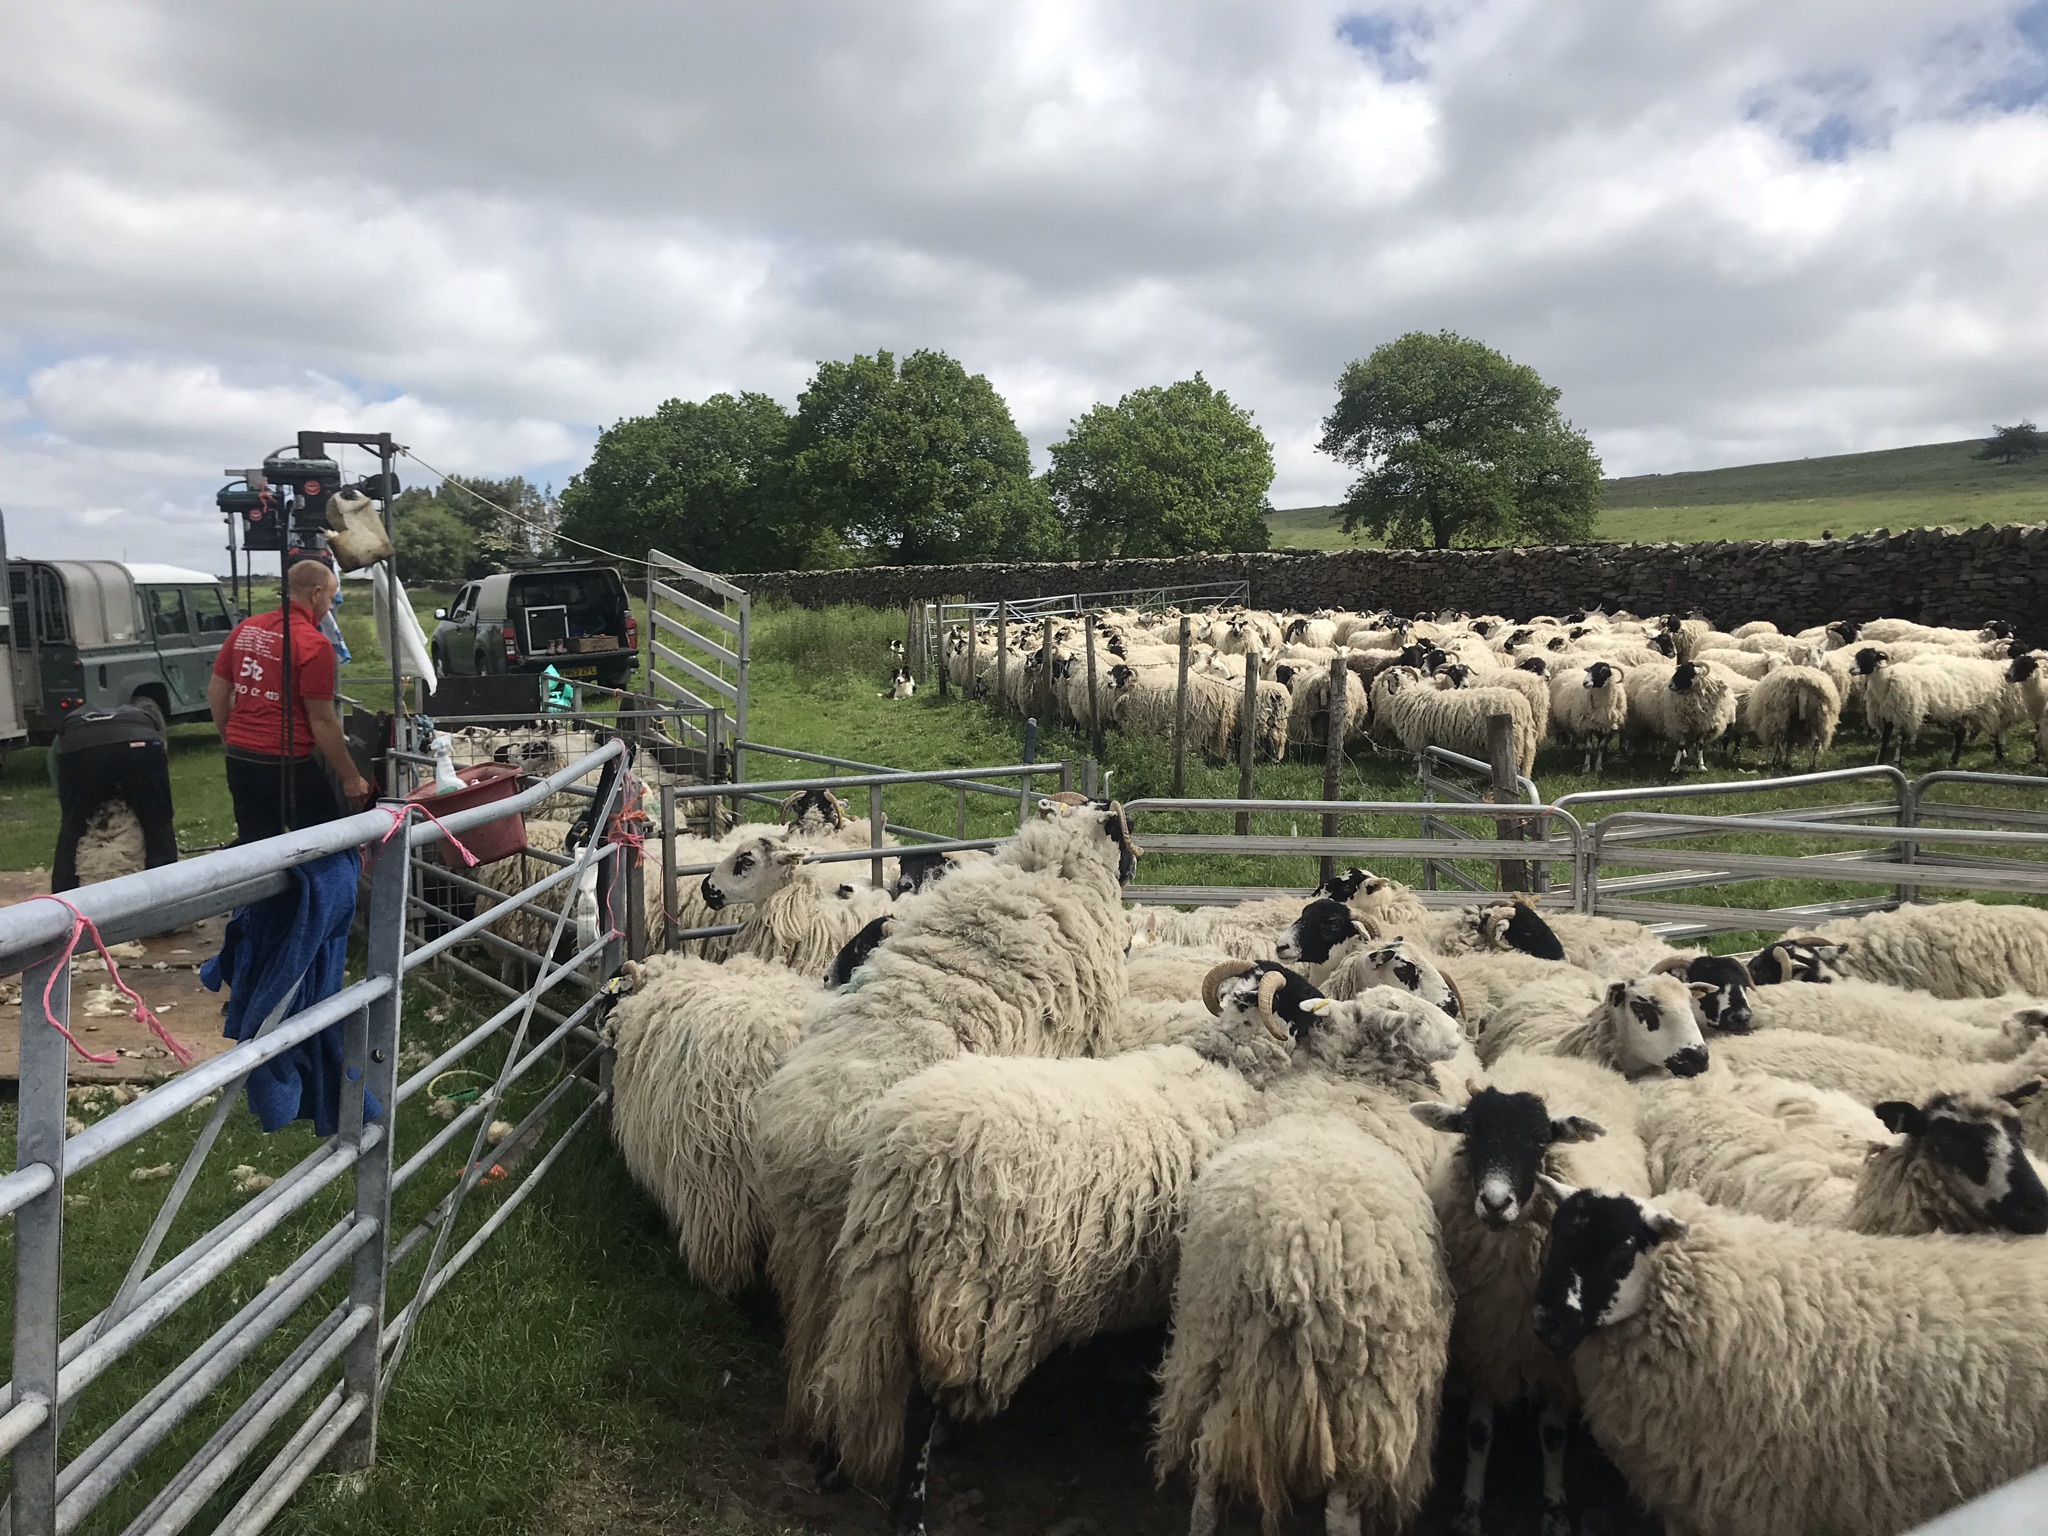 Sheep with long shaggy coats wait in pens to be sheared. Two men are shearing the sheep.